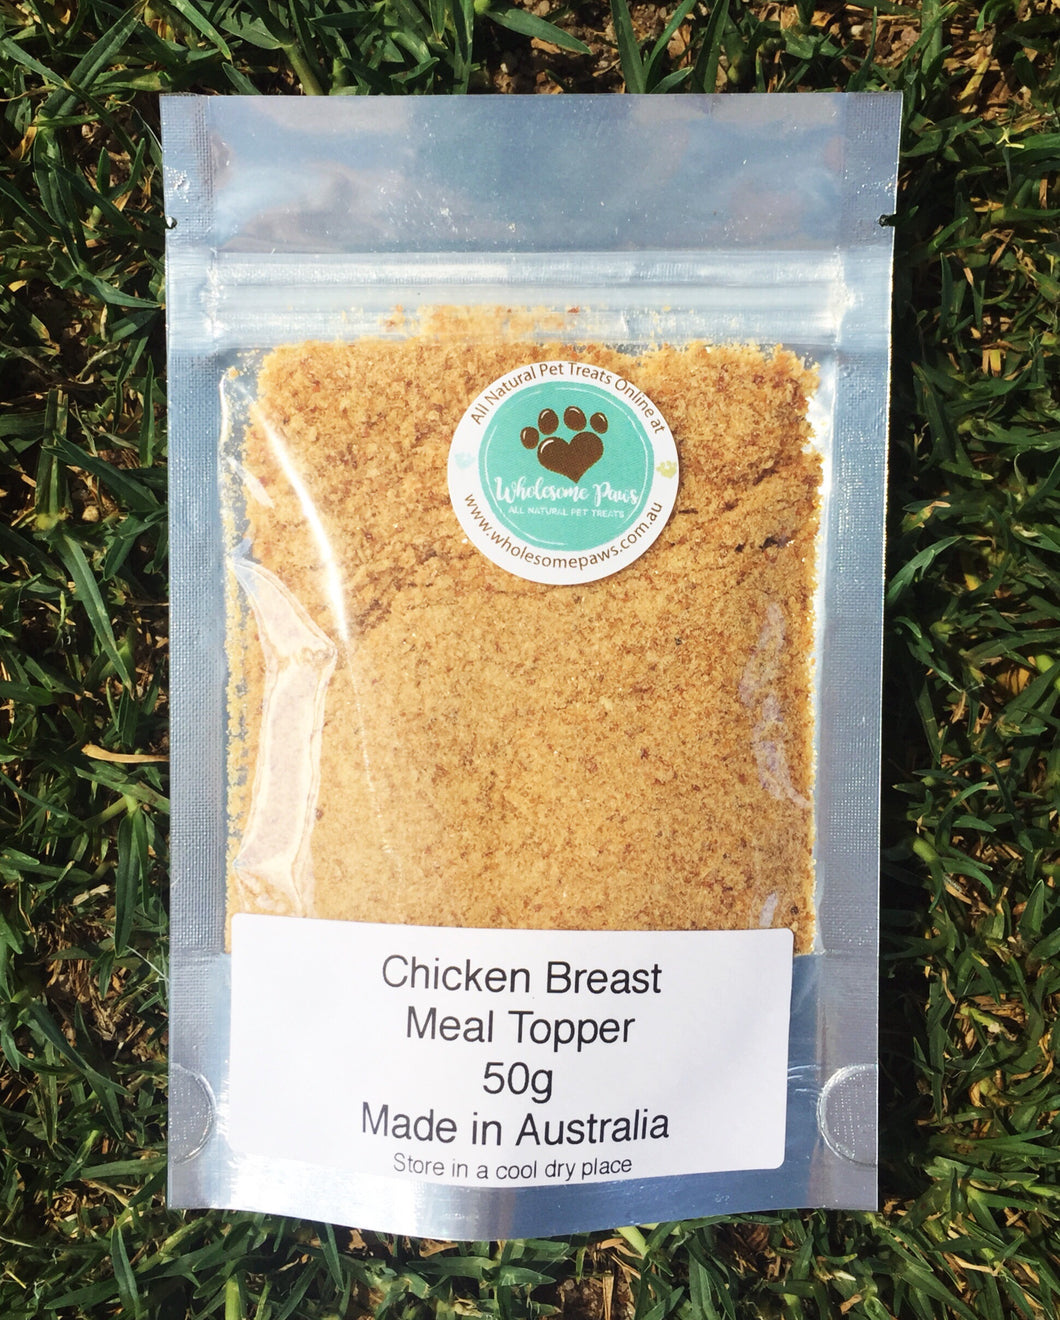 Chicken Breast Meal Topper 50g